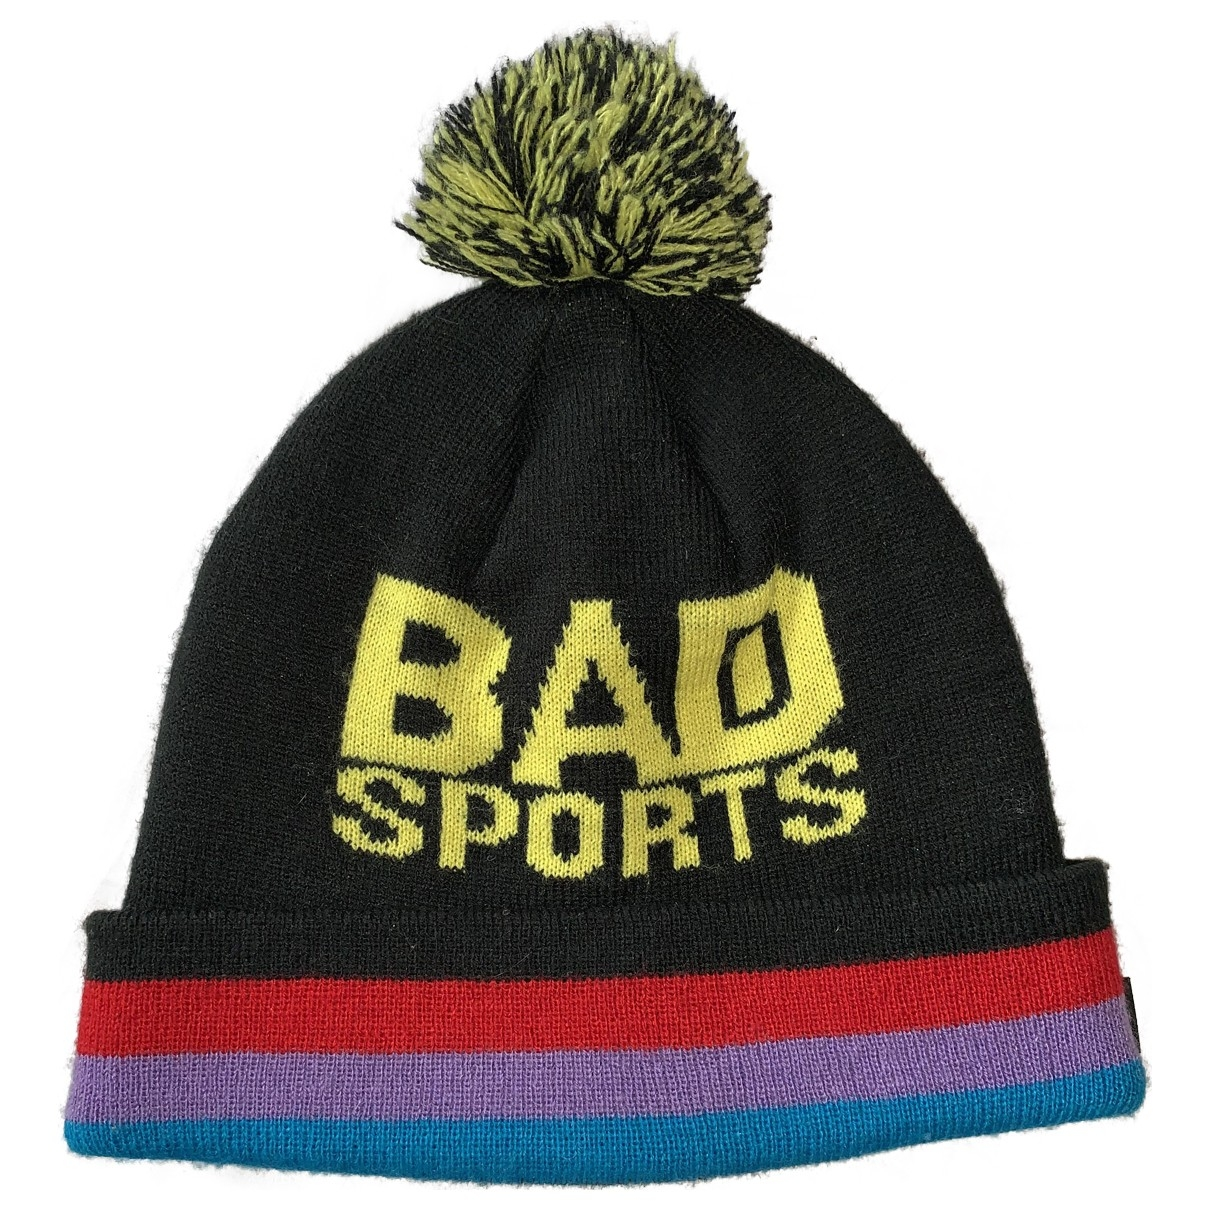 Undefeated \N Black Wool hat & pull on hat for Men M International